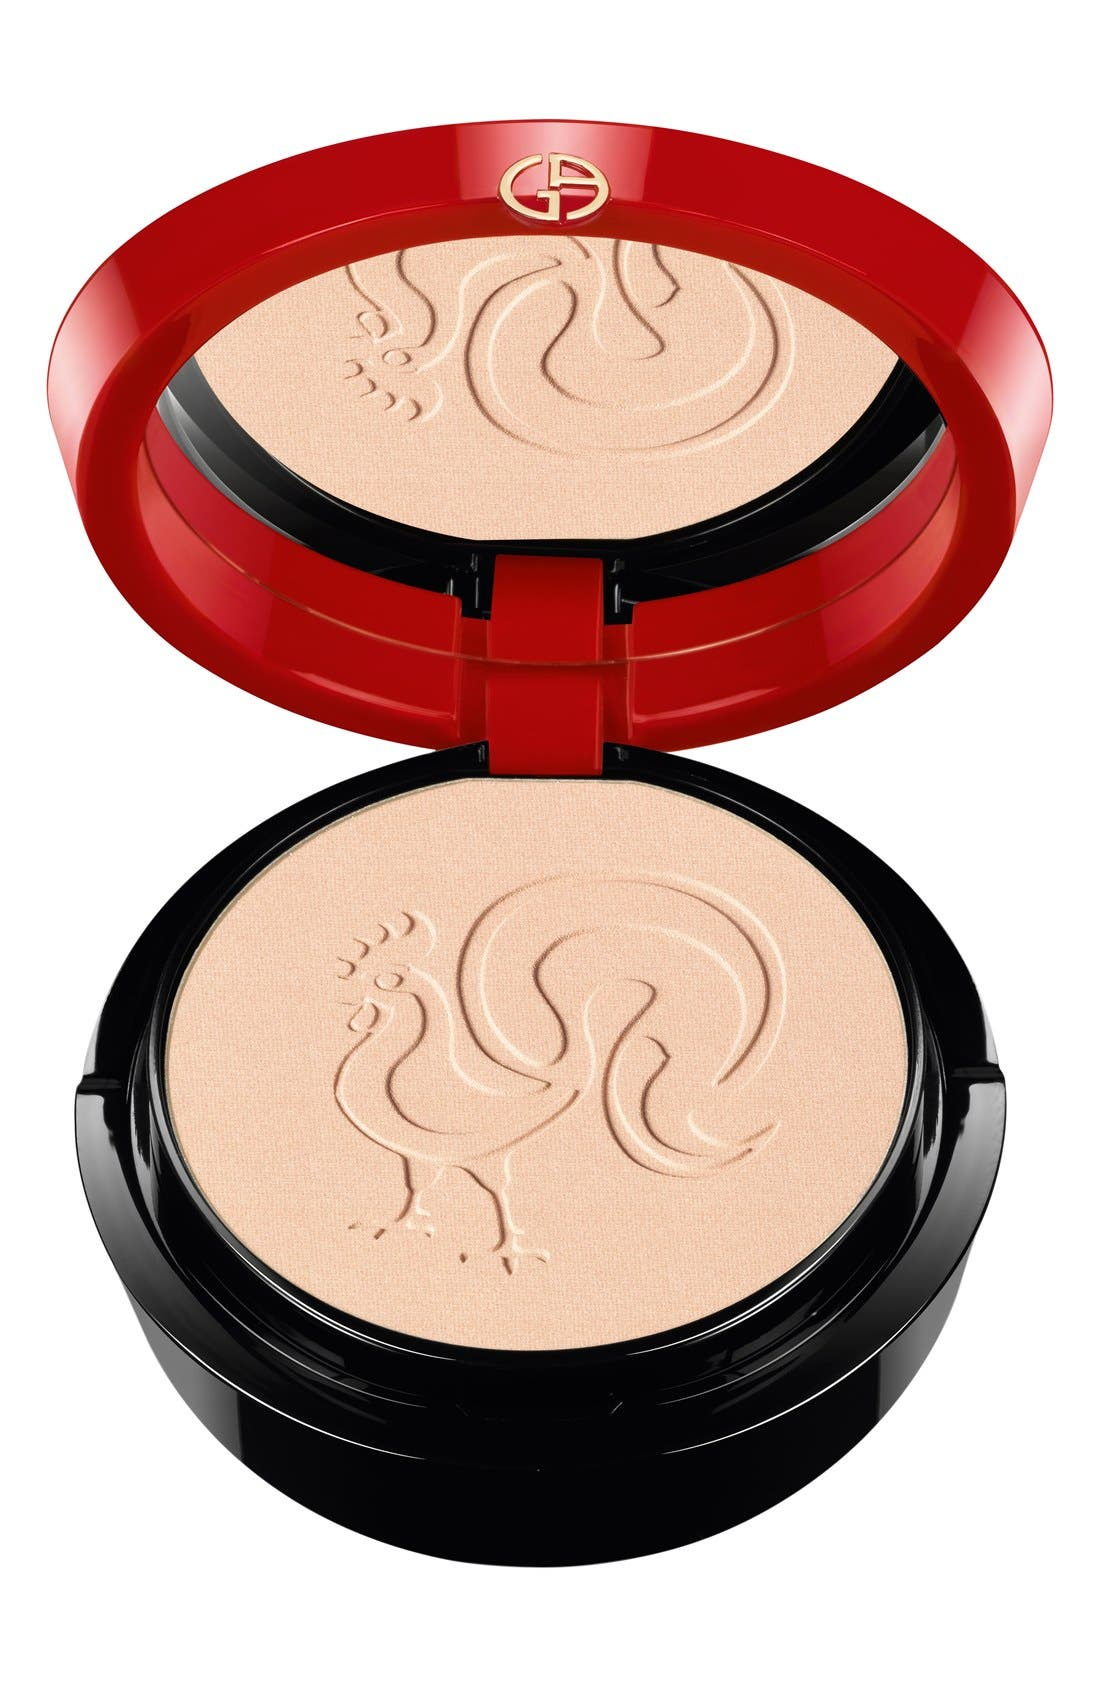 Chinese New Year Armani Glow Face Powder Compact,                             Main thumbnail 1, color,                             000